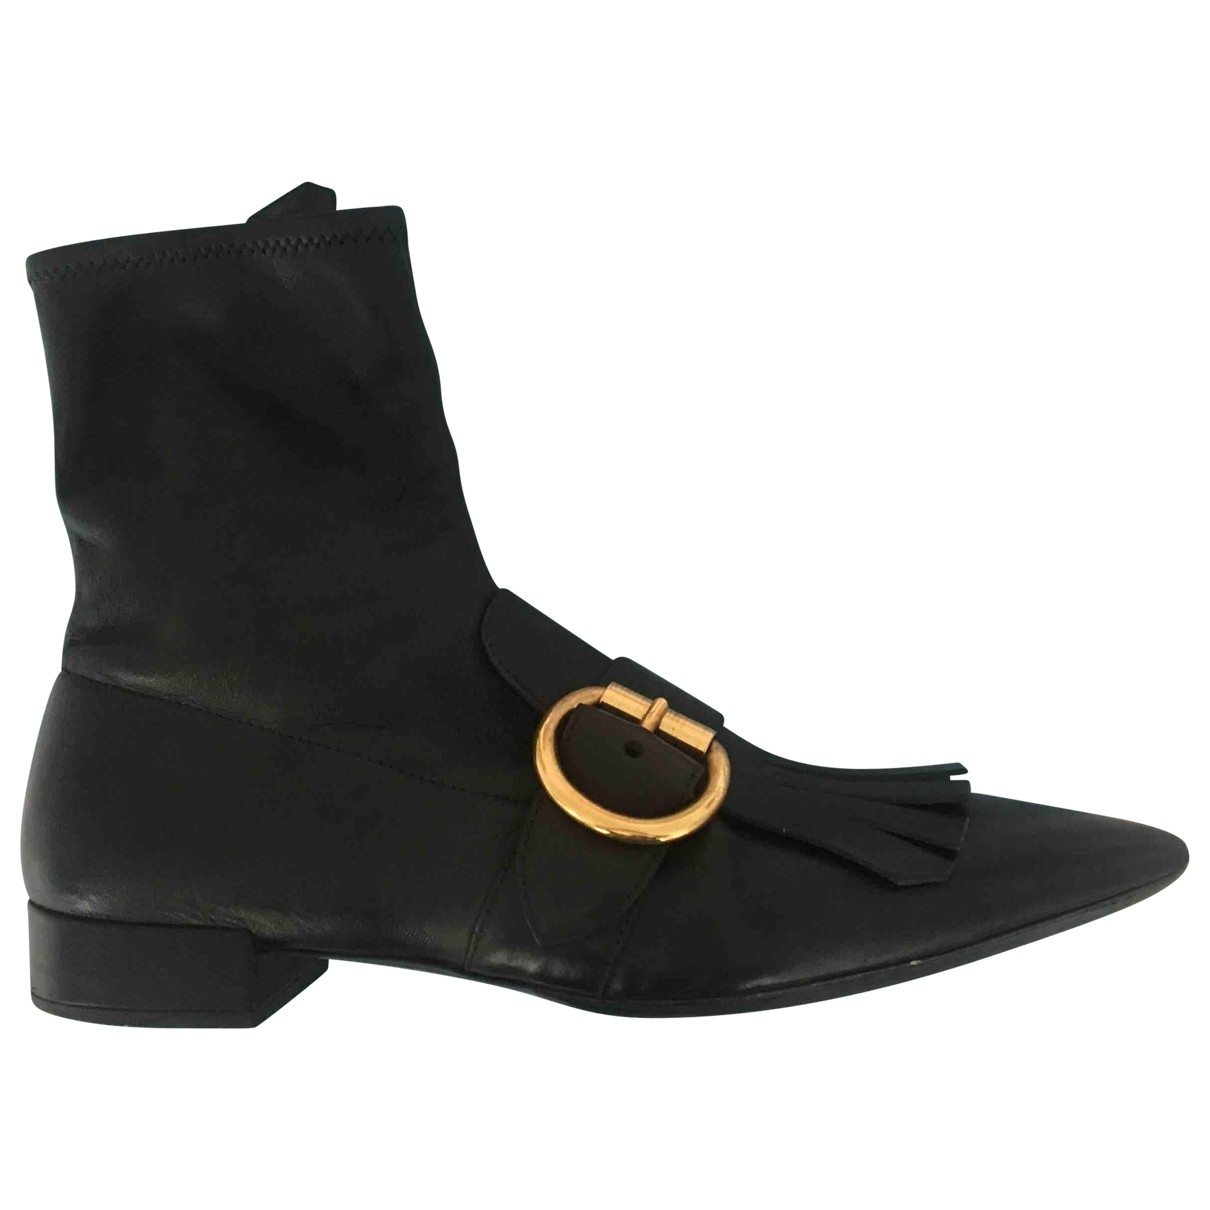 Prada \N Black Leather Ankle boots for Women 39.5 EU